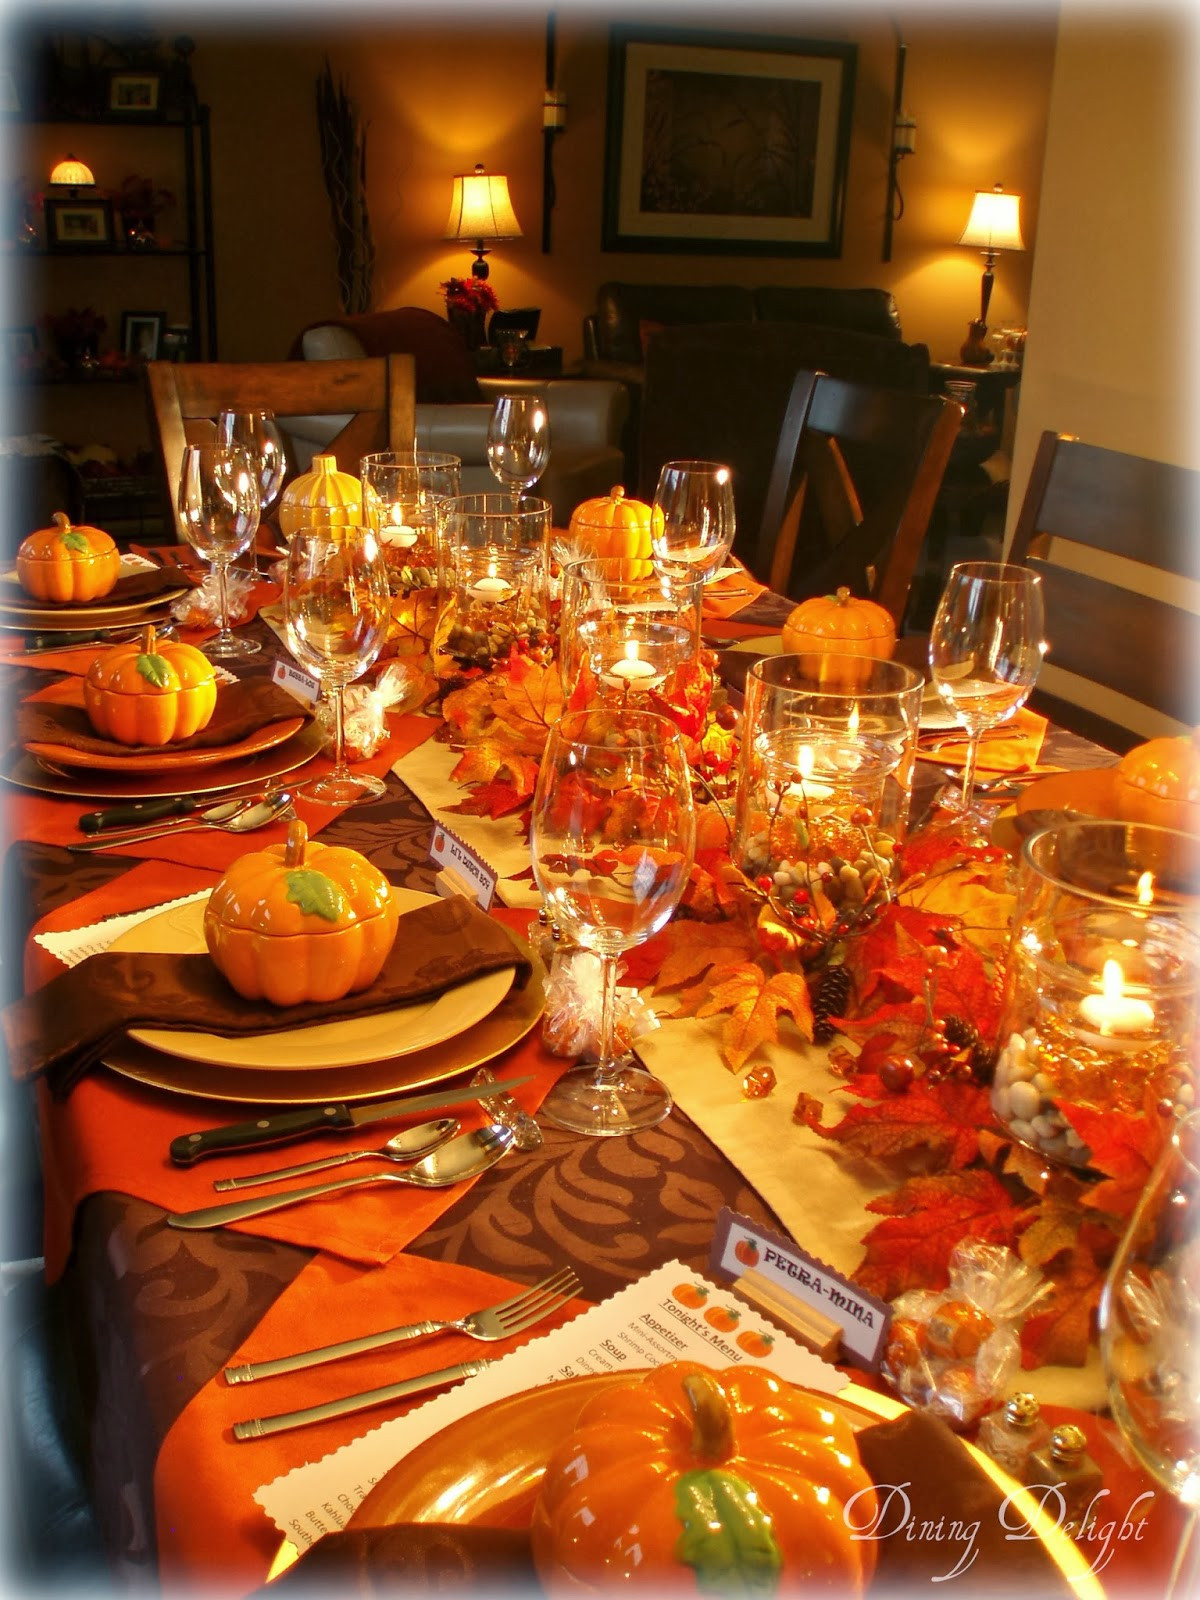 Table Decorations For Thanksgiving  Dining Delight Fall Dinner Party for Ten